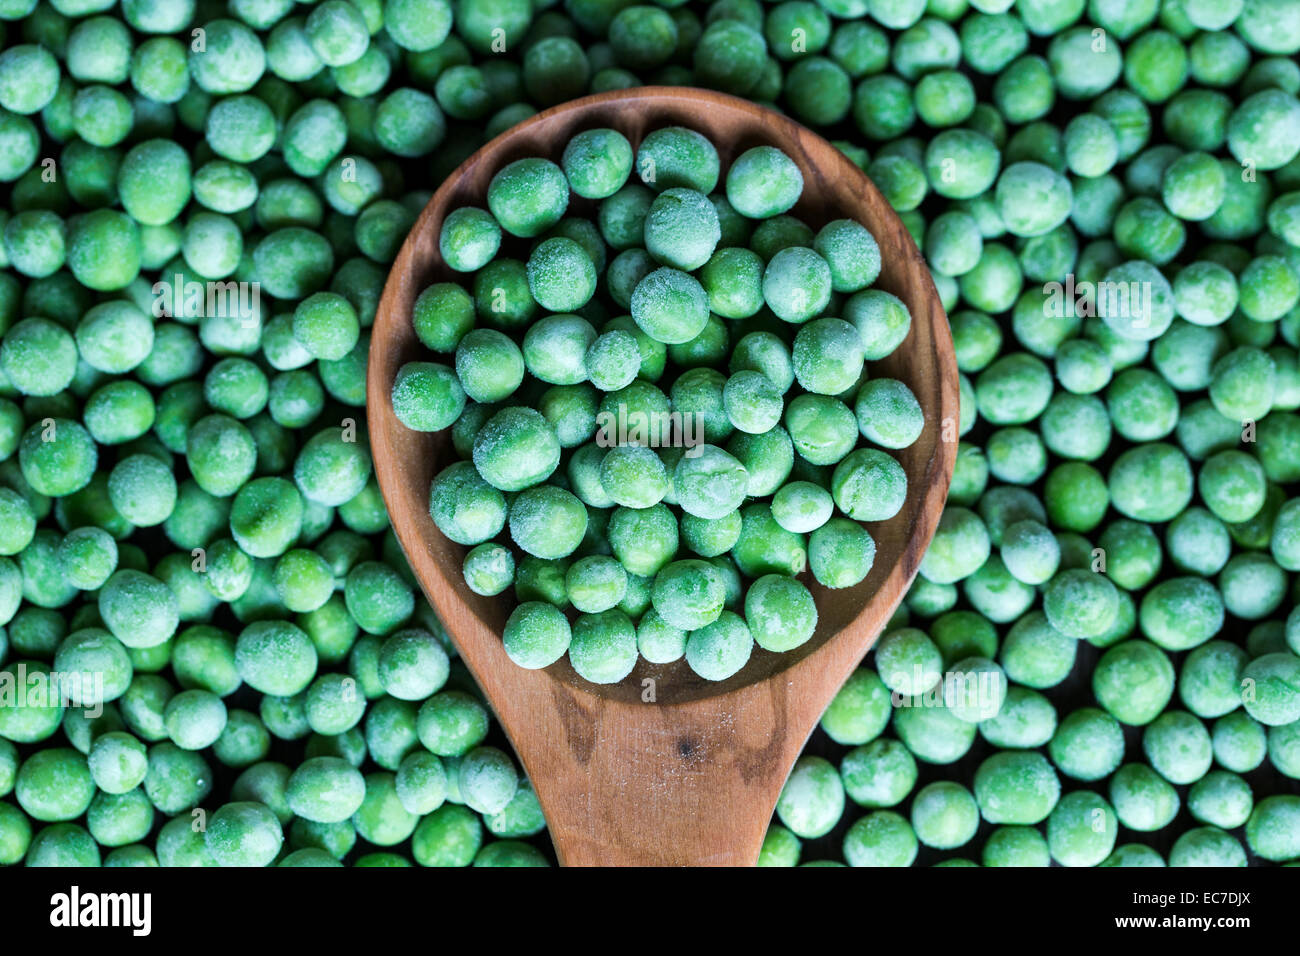 Wooden spoon and frozen peas Stock Photo